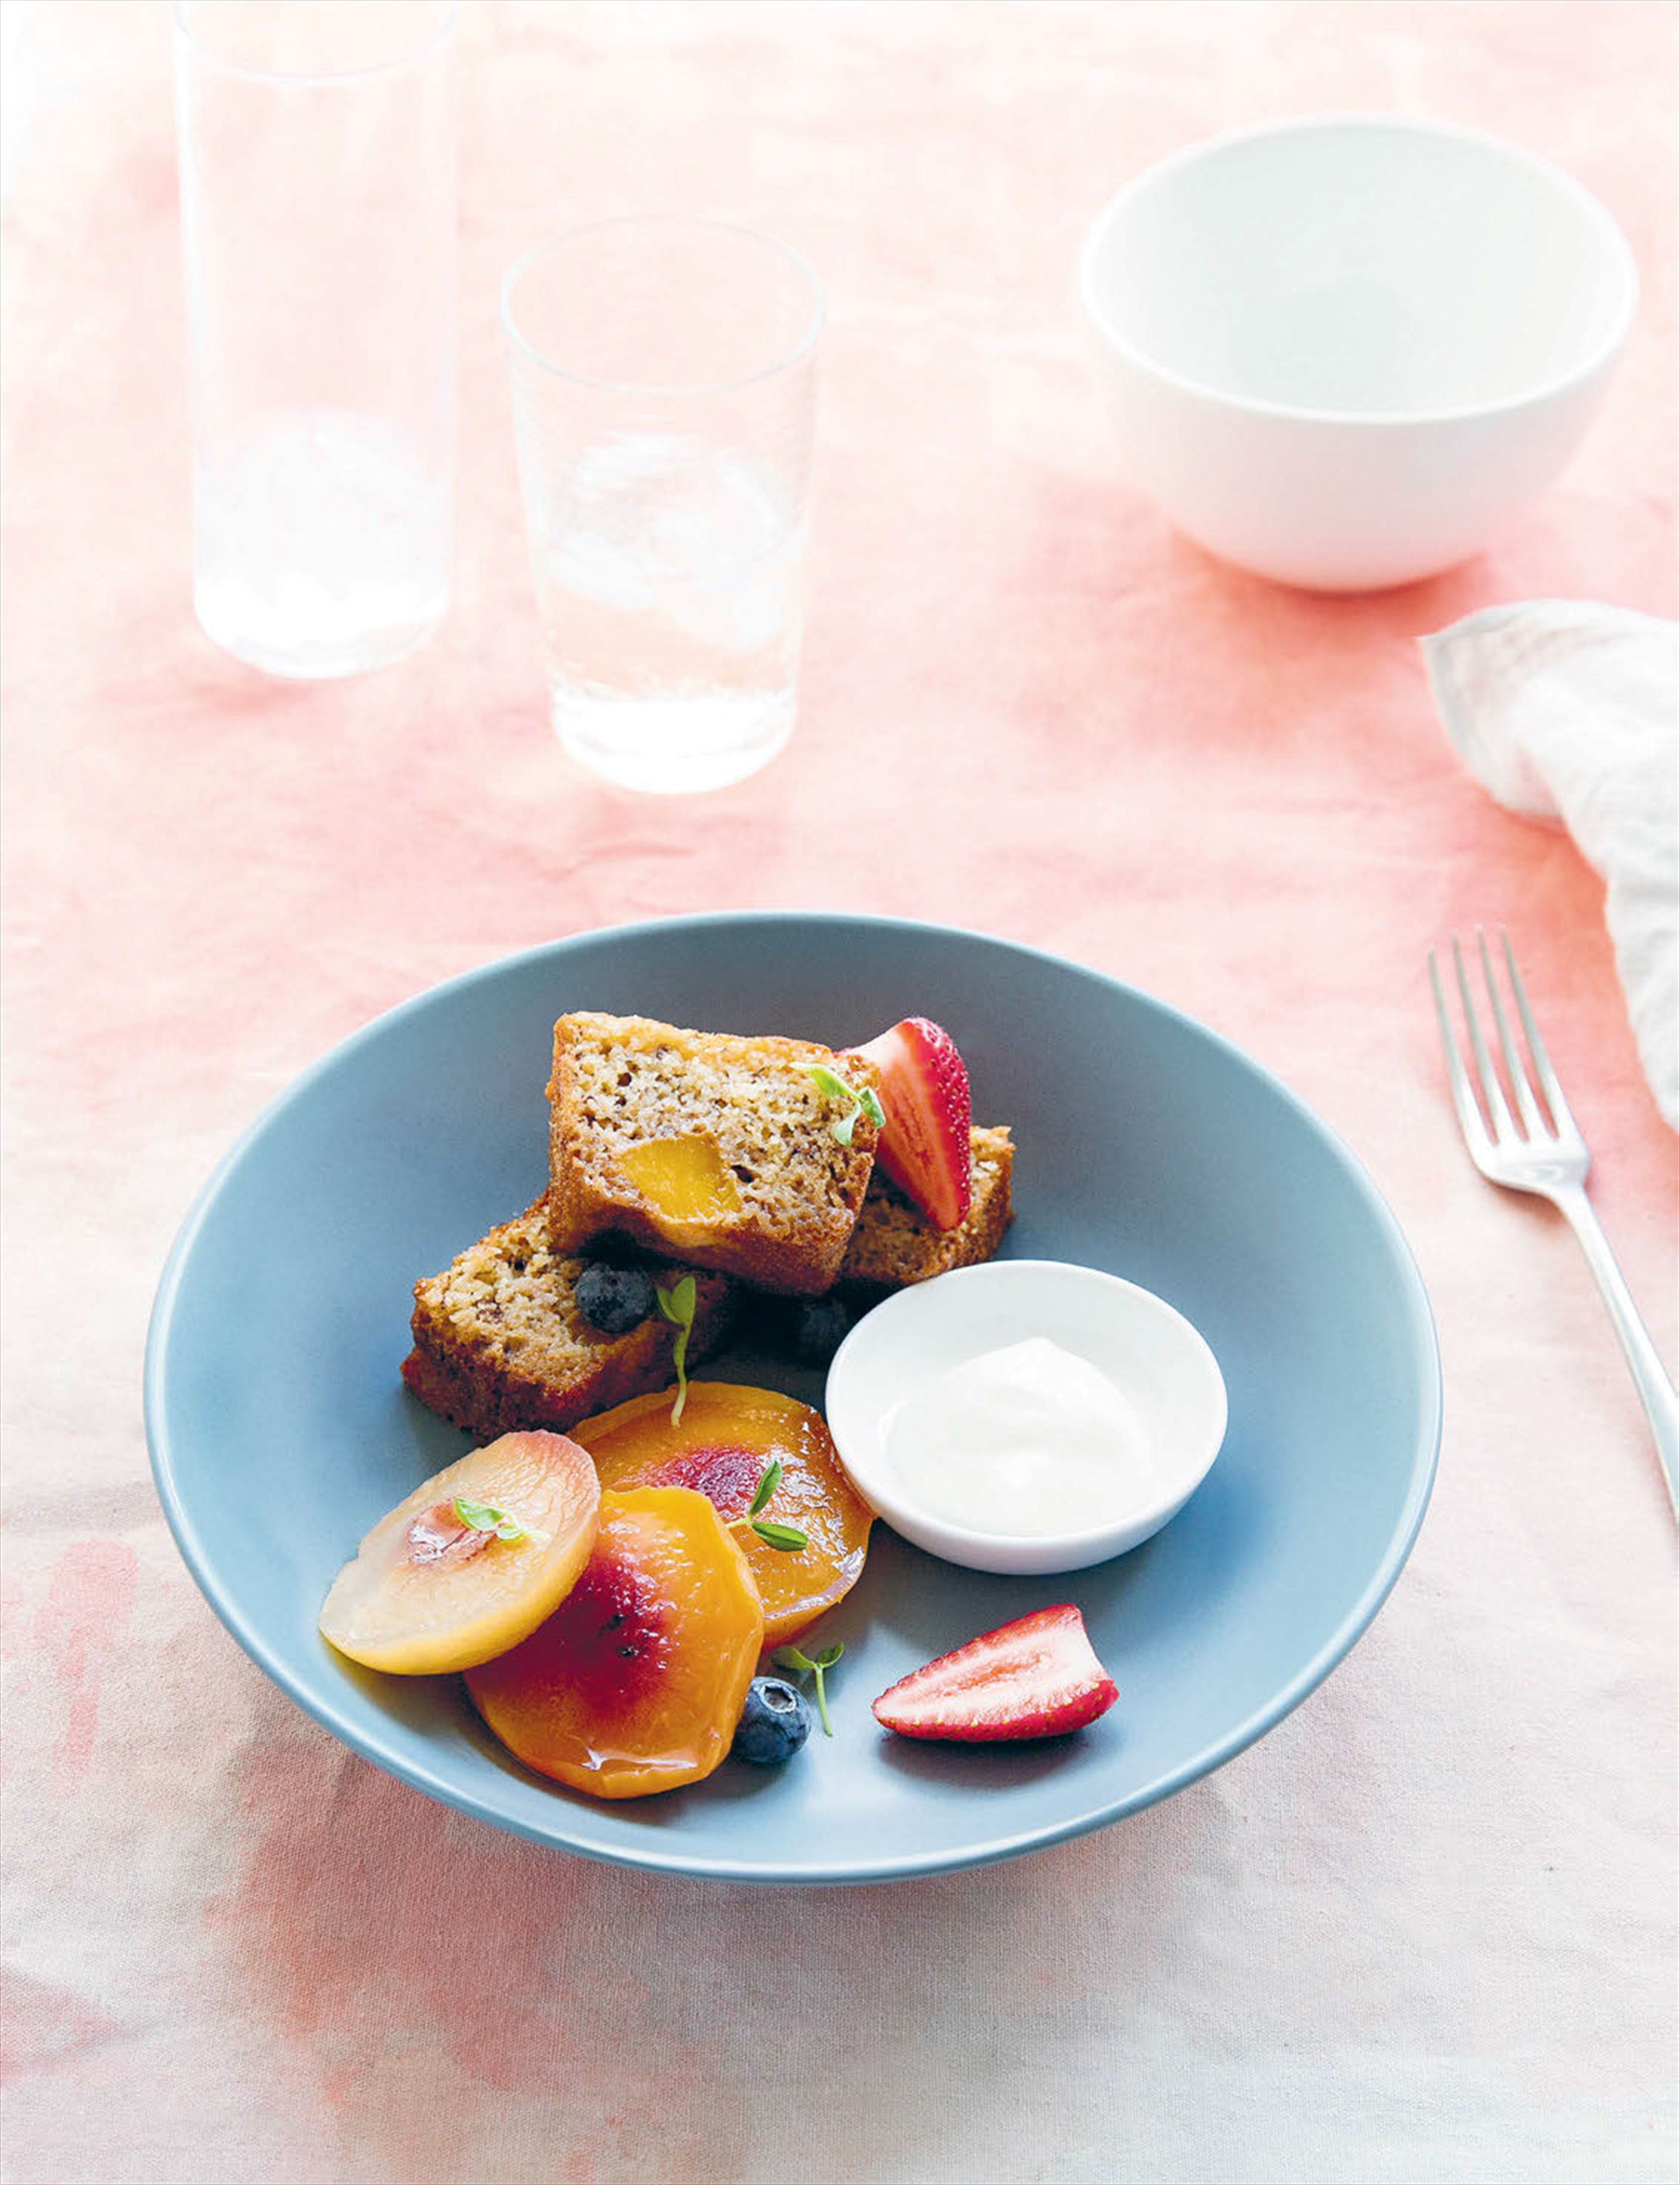 Mango and coconut bread with poached stone fruit